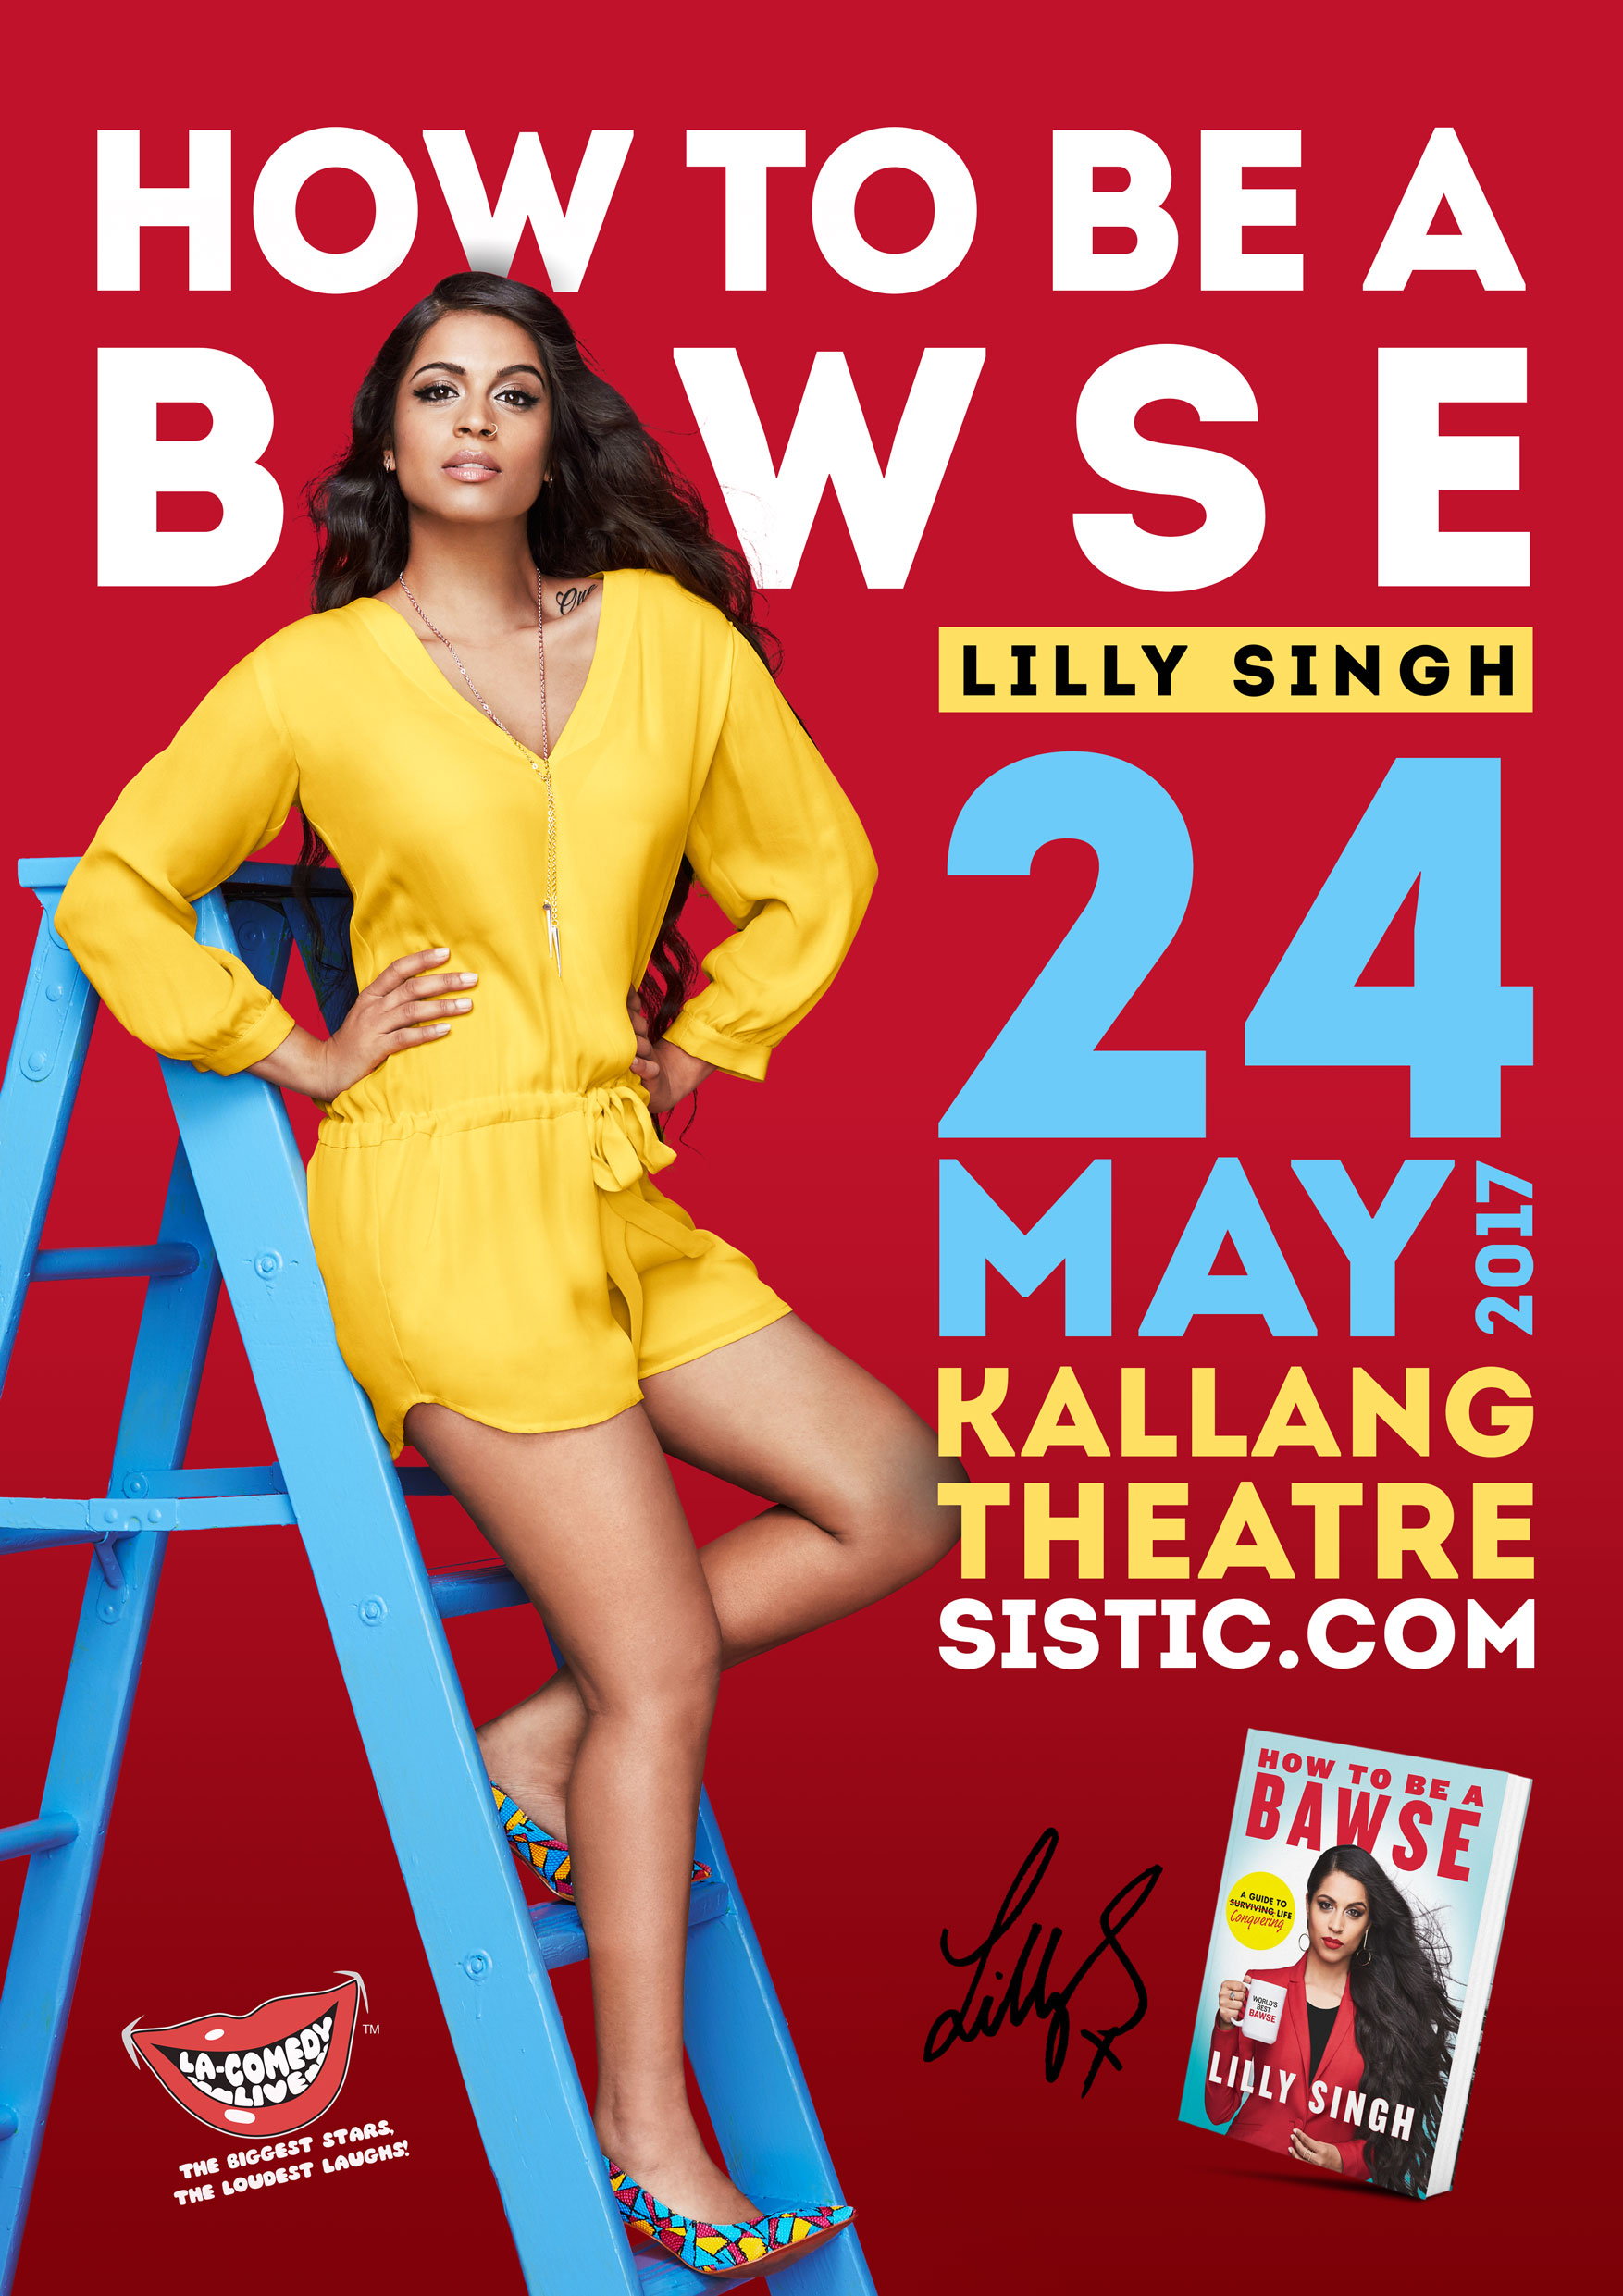 How To Be A Bawse '�  Lilly Singh Books Kinokuniya How To Be A Model Elite  Copenhagen